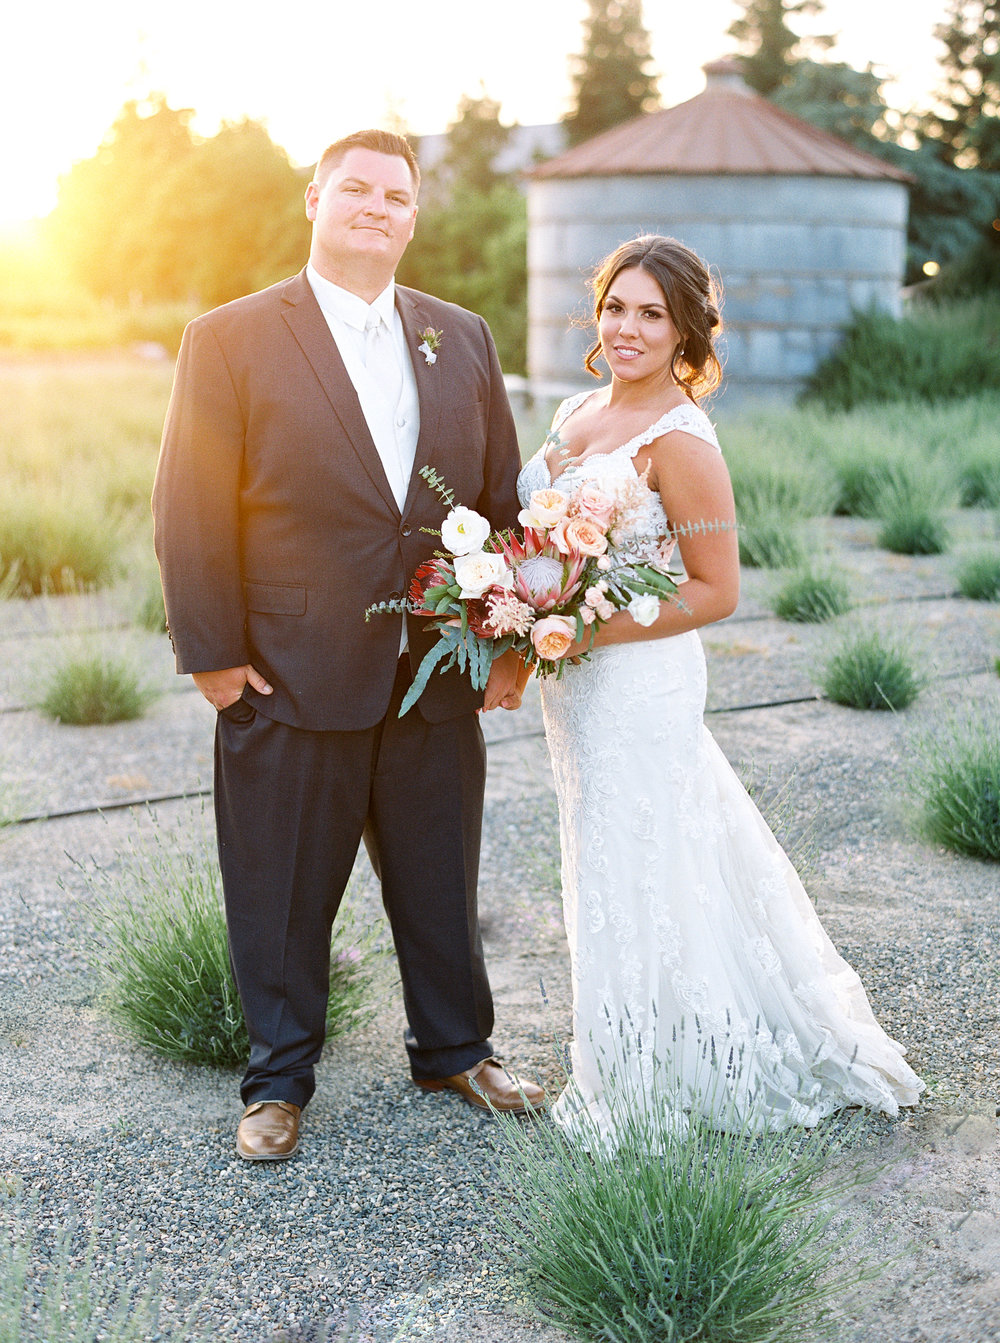 pageo-lavender-farm-wedding-turlock-california-1-18.jpg